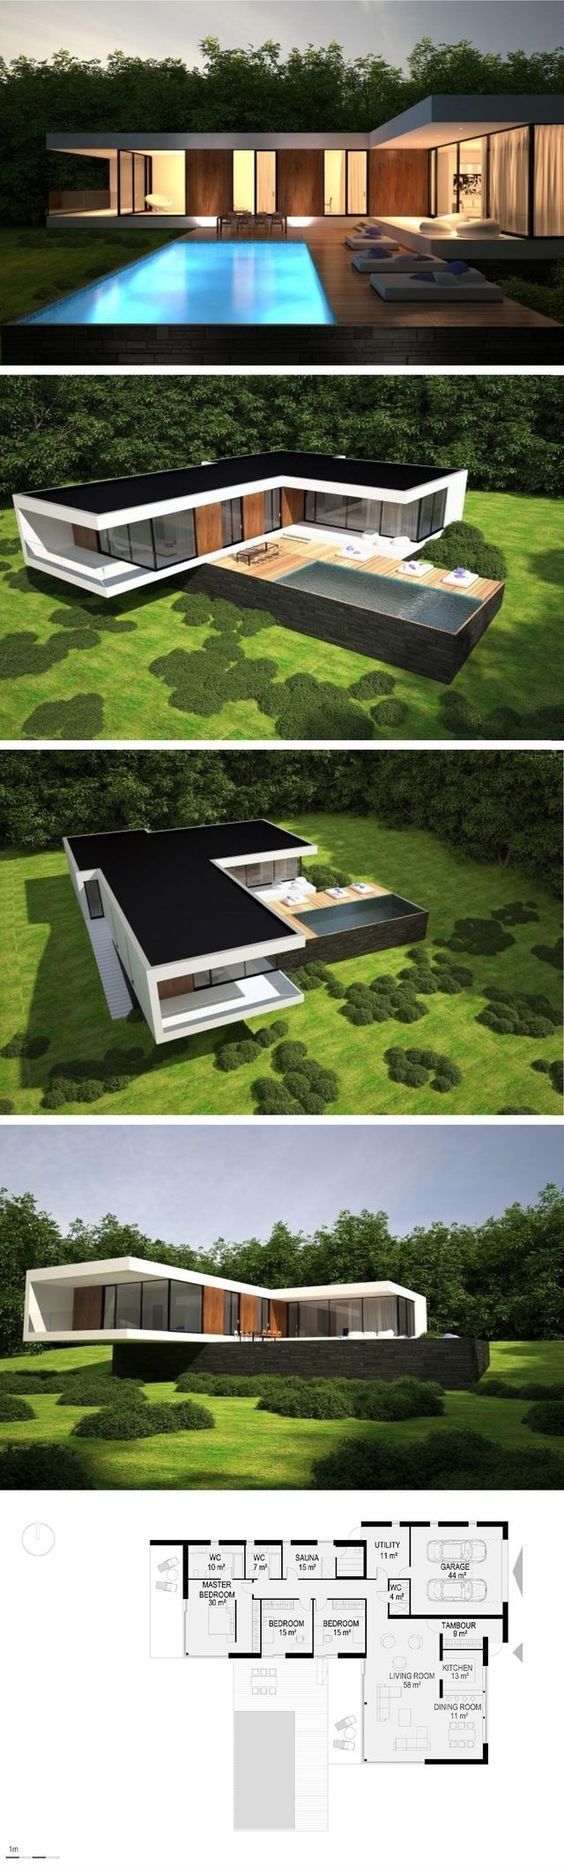 Pin by koc ada on domy pinterest house exterior for Sims 4 exterior design